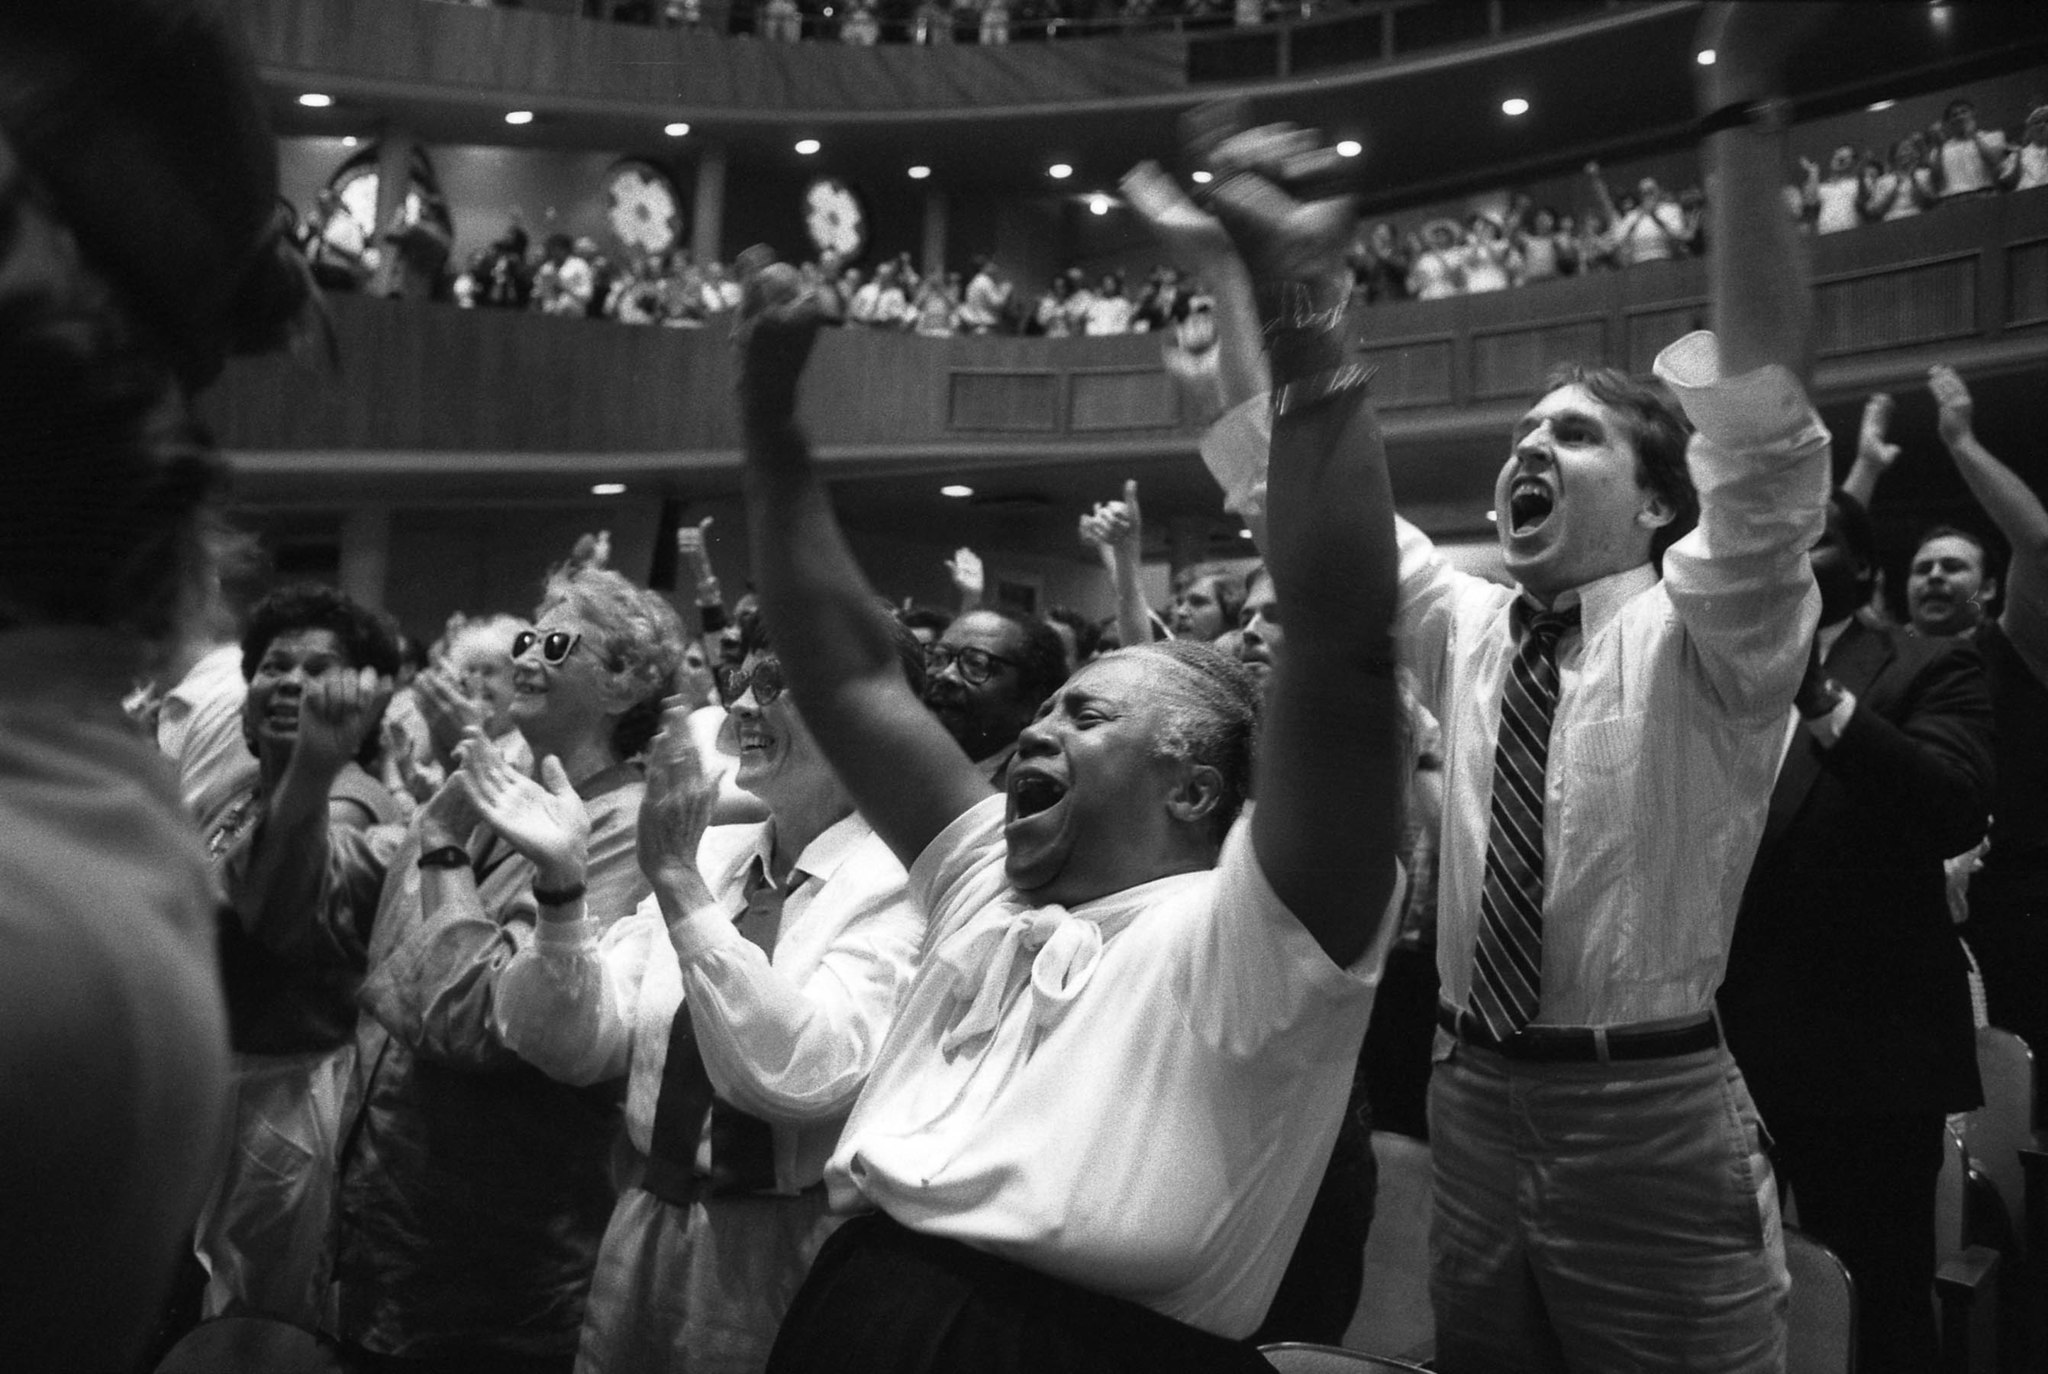 July 6, 1986: Church of the Open Door congregation in Los Angeles cheering Dr. Gene Scott. This ima